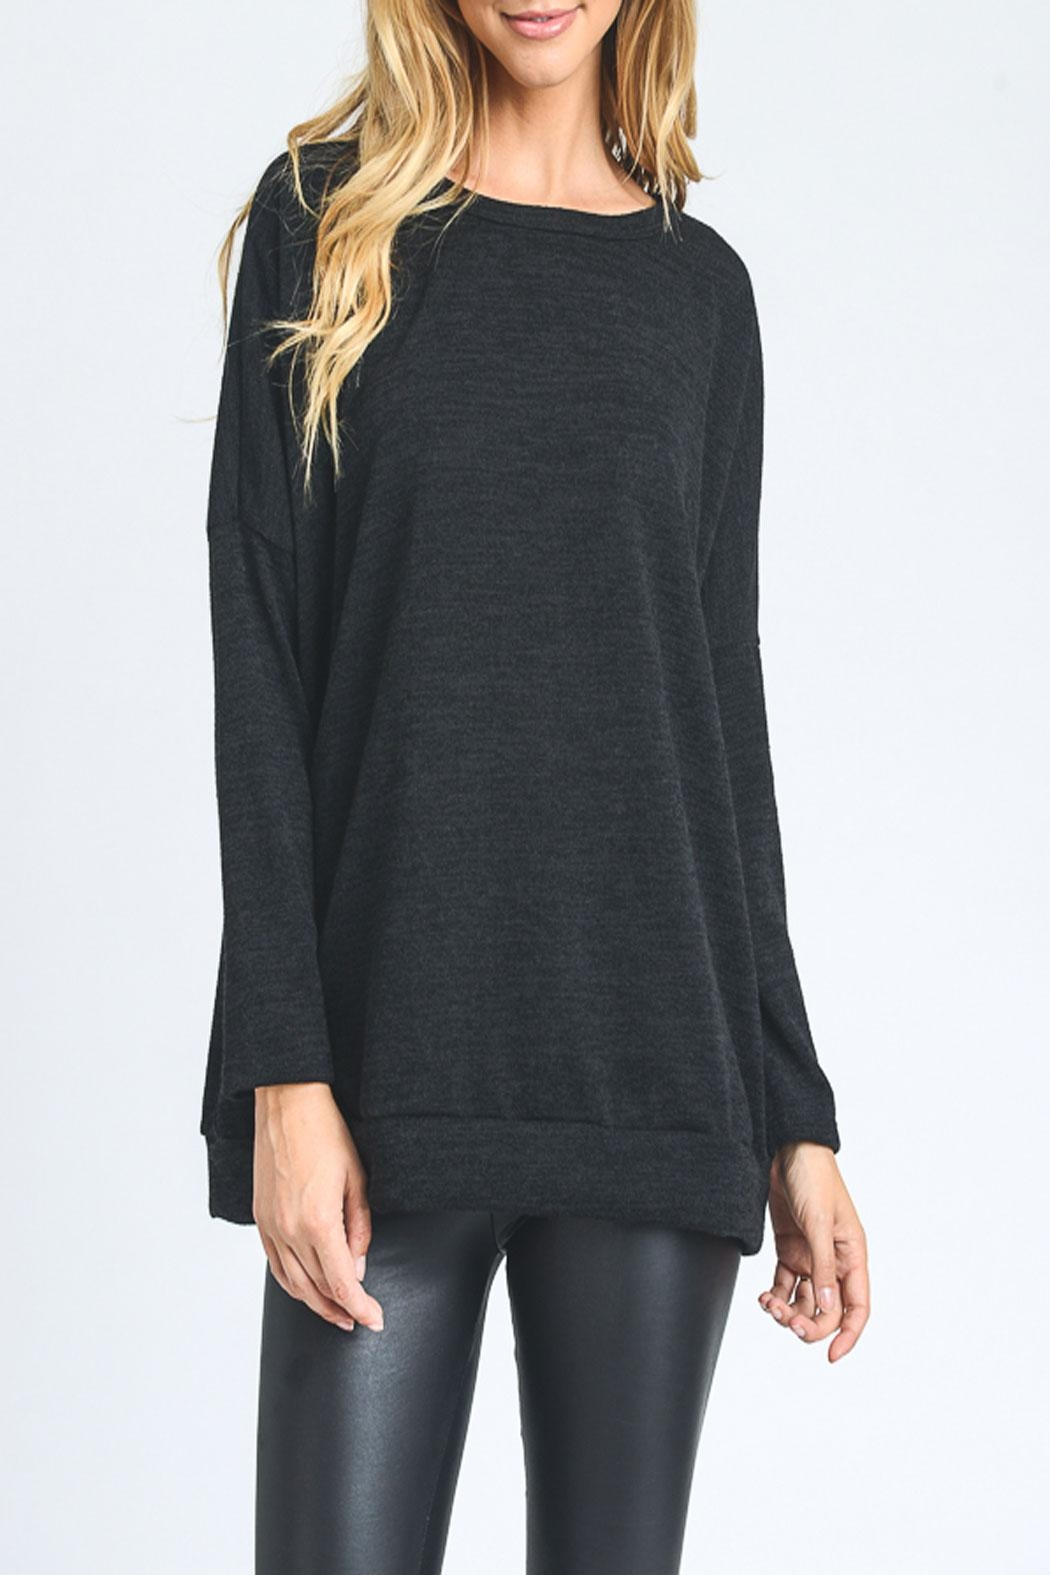 Hopely Knit Top Black - Main Image